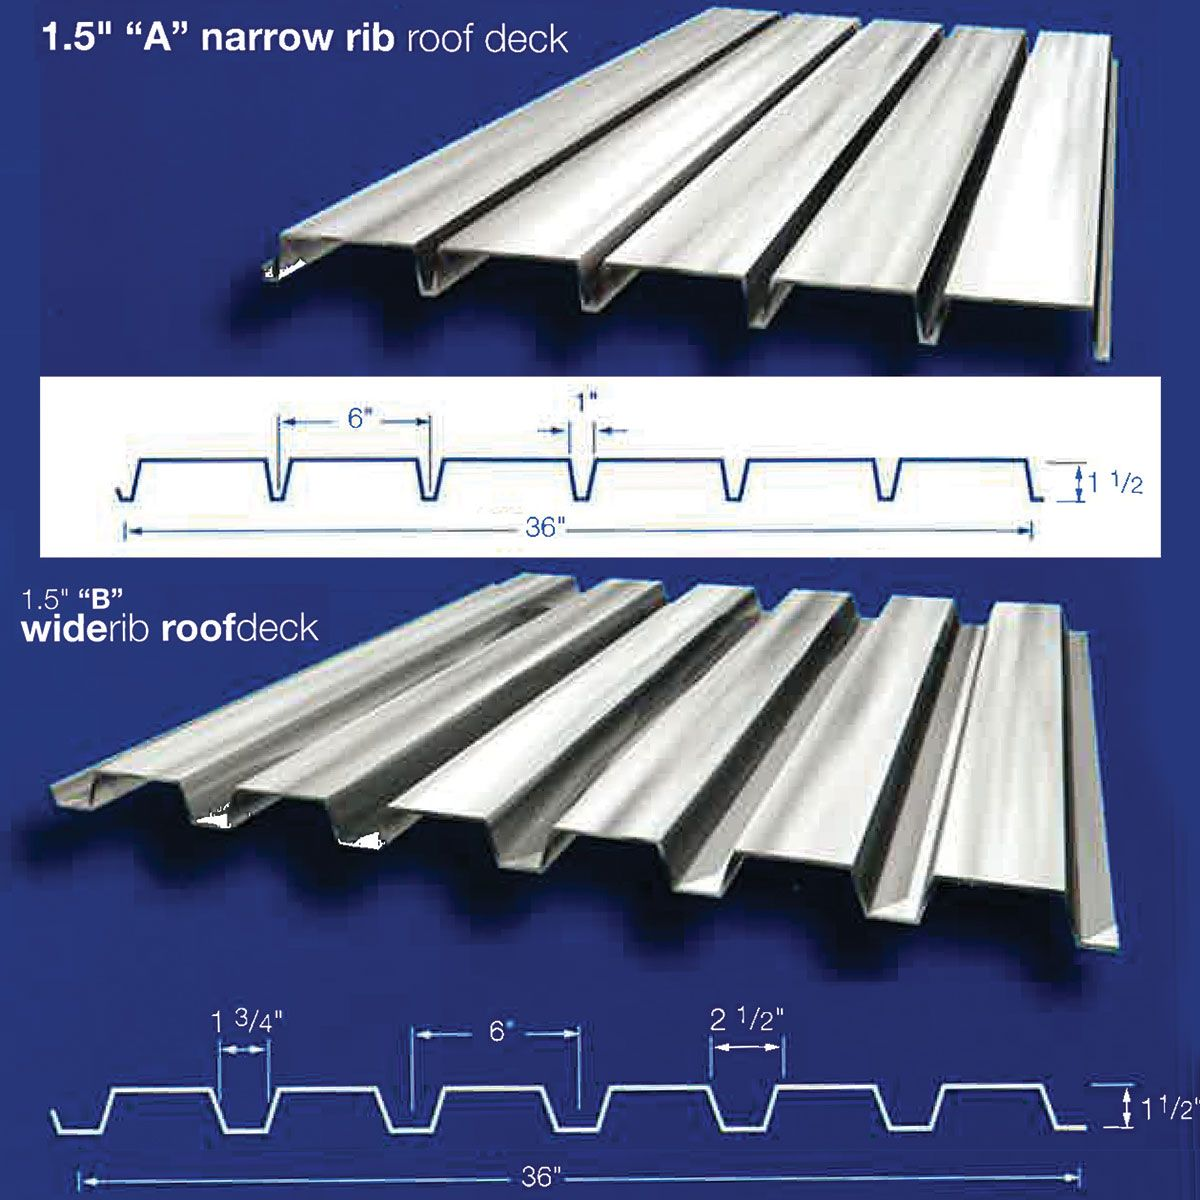 Steel Roof Decking Narrow And Wide Rib Roof Deck Under Deck Roofing Decks And Porches